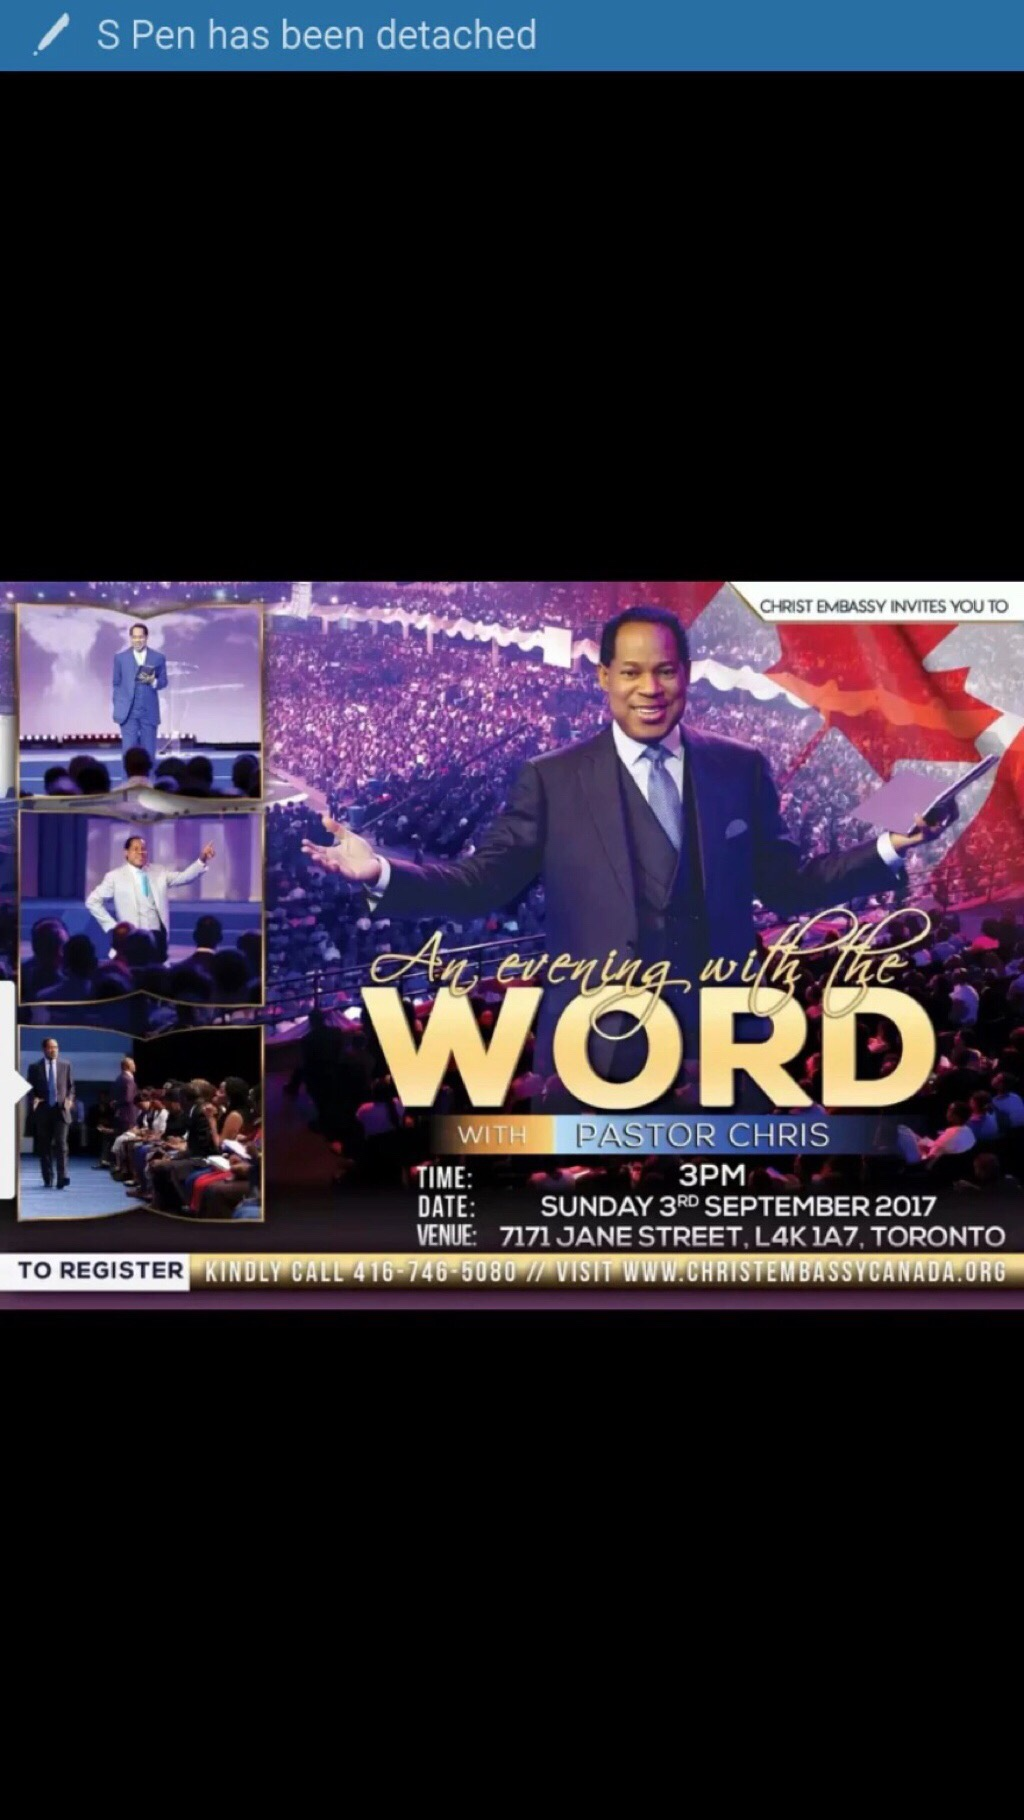 Evening with the word with